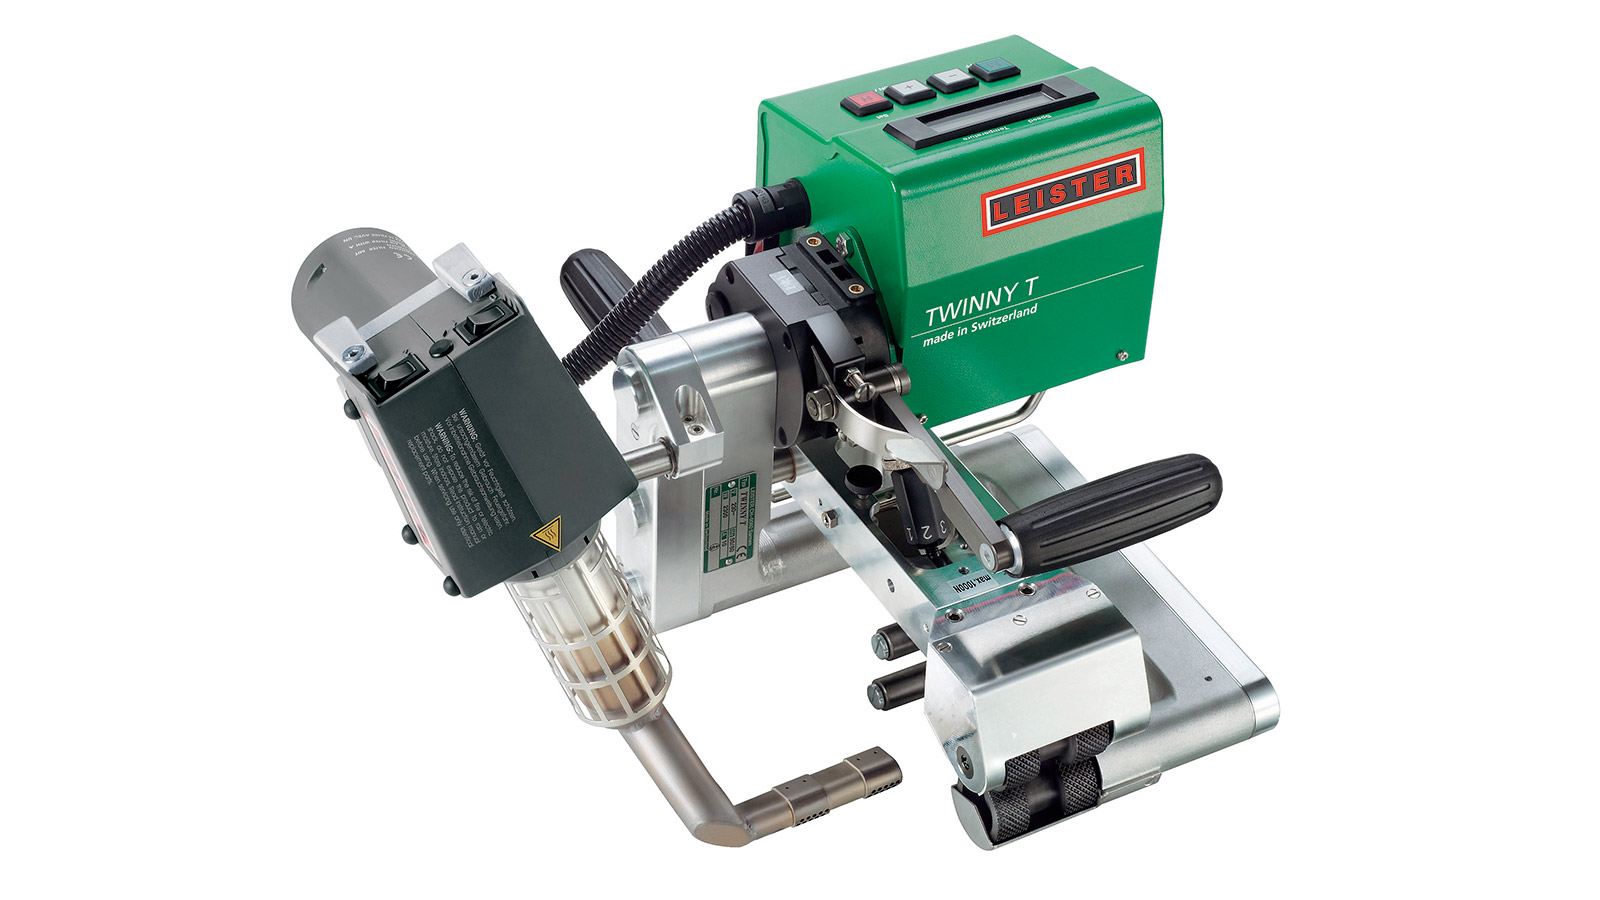 TWINNY T Combi-wedge welder